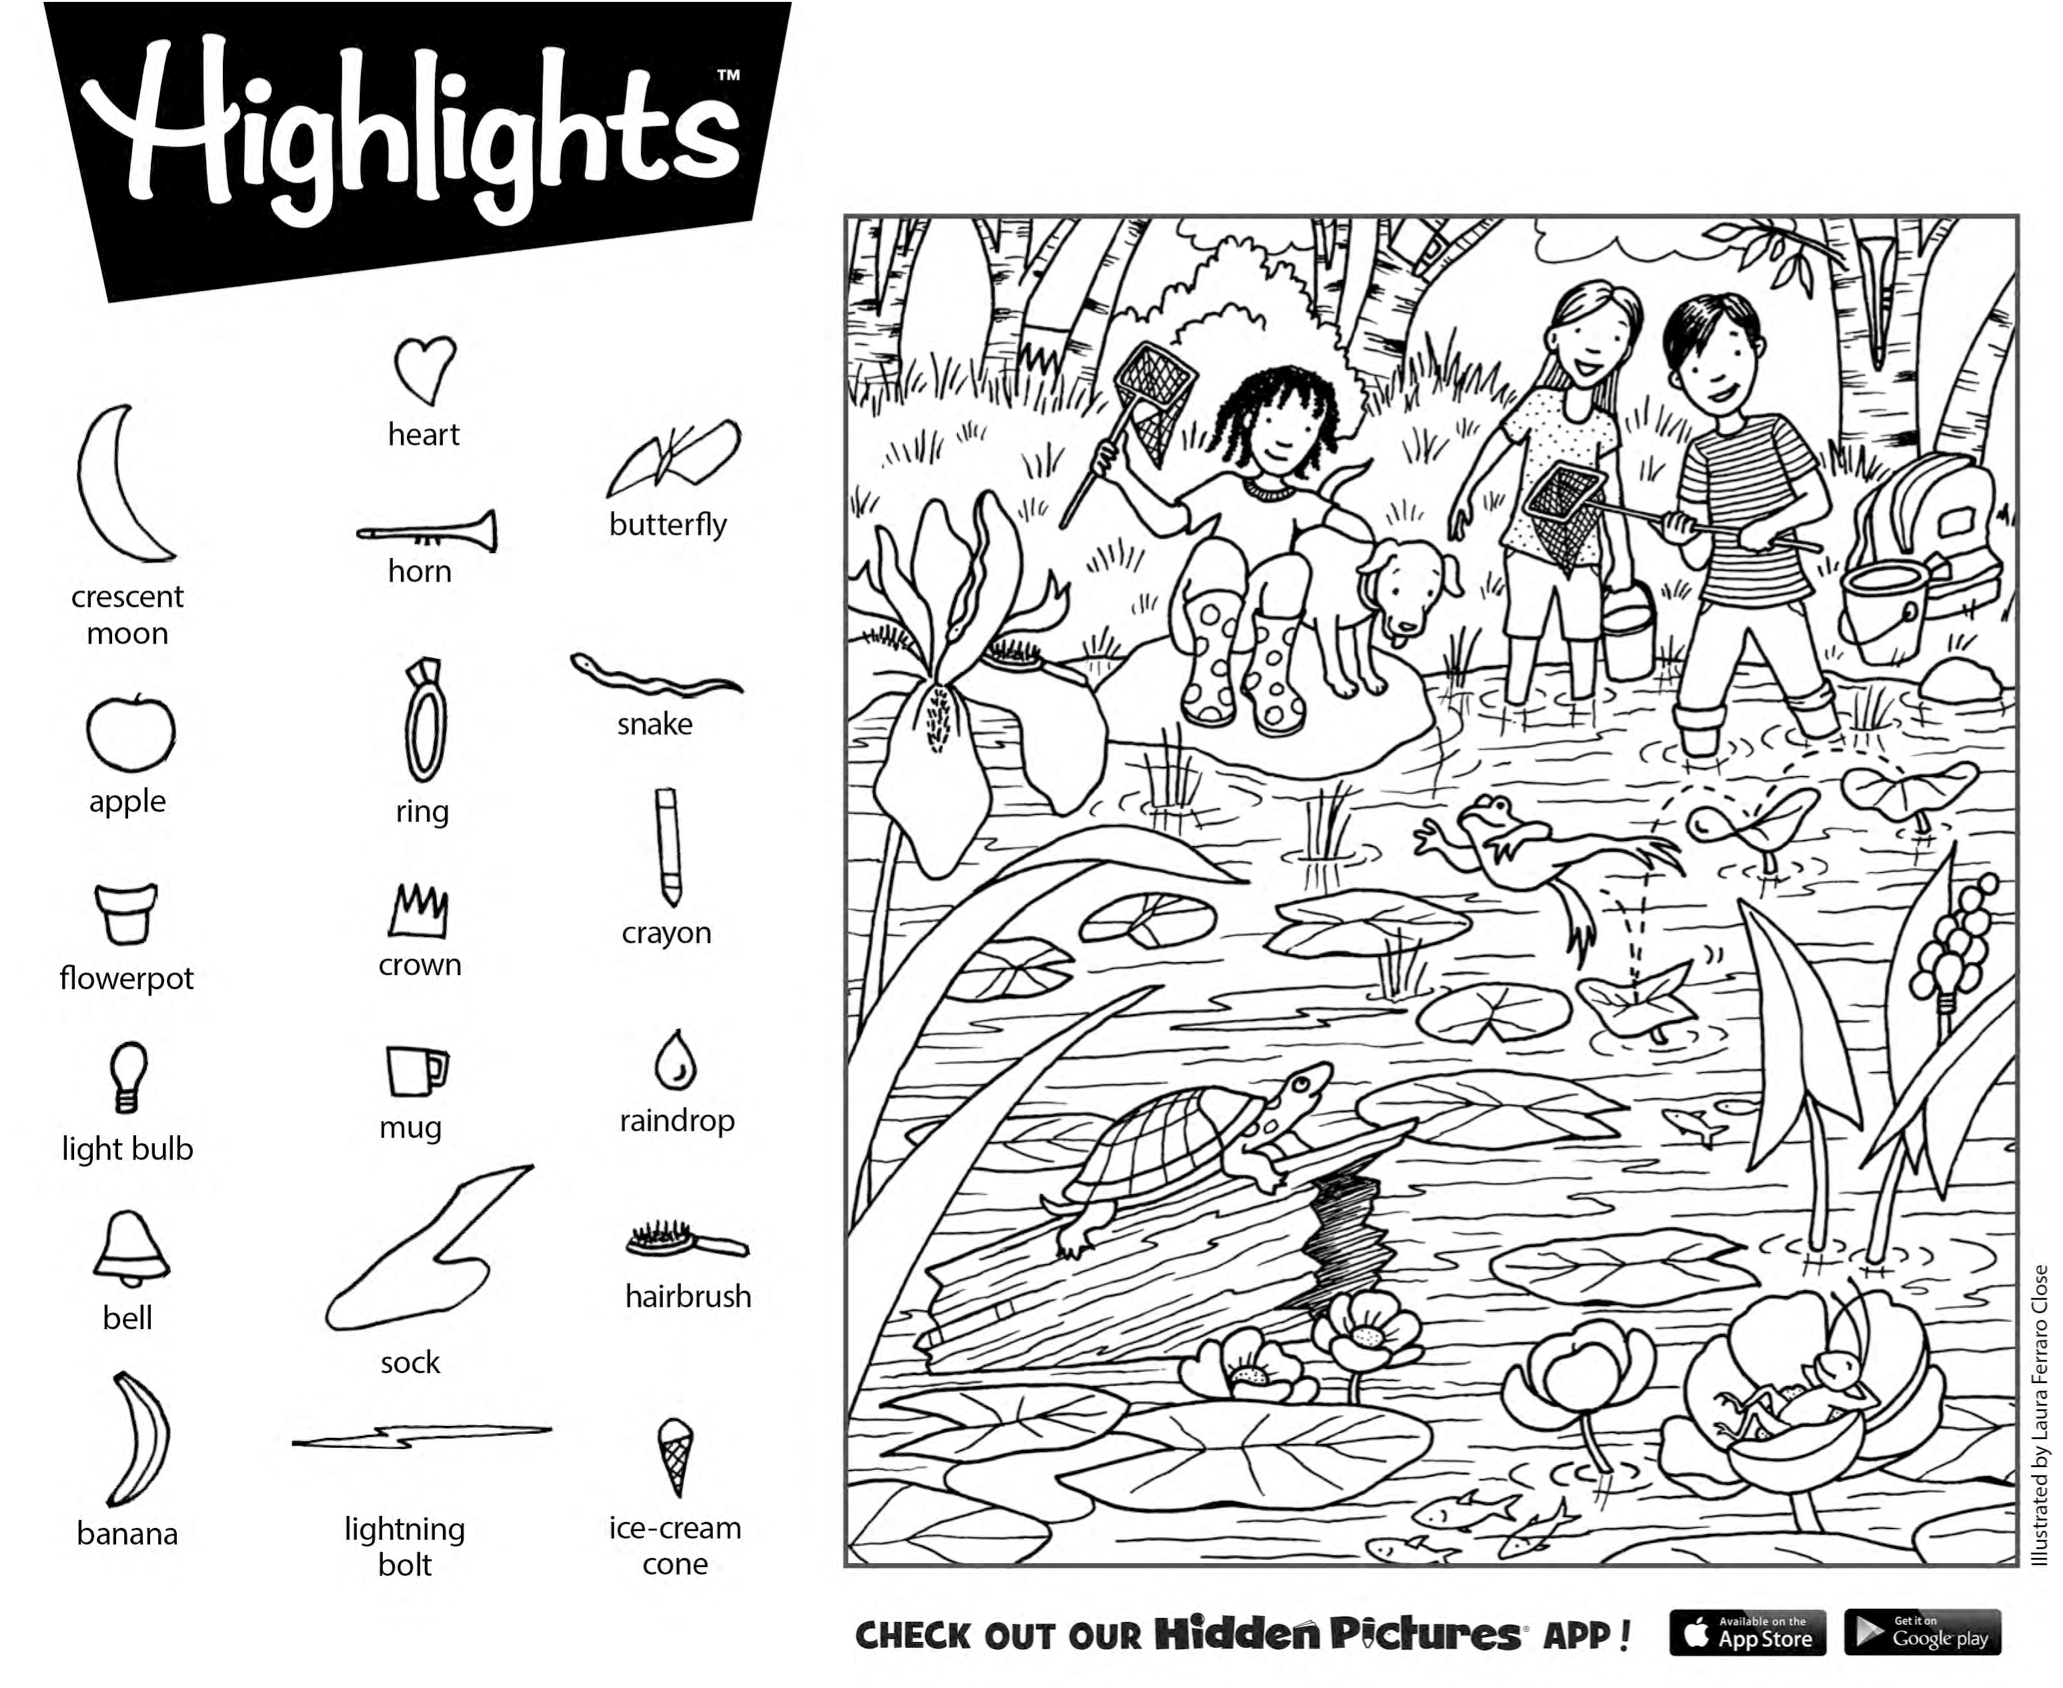 Download This Free Printable Hidden Pictures Puzzle From Highlights - Free Printable Hidden Picture Puzzles For Adults